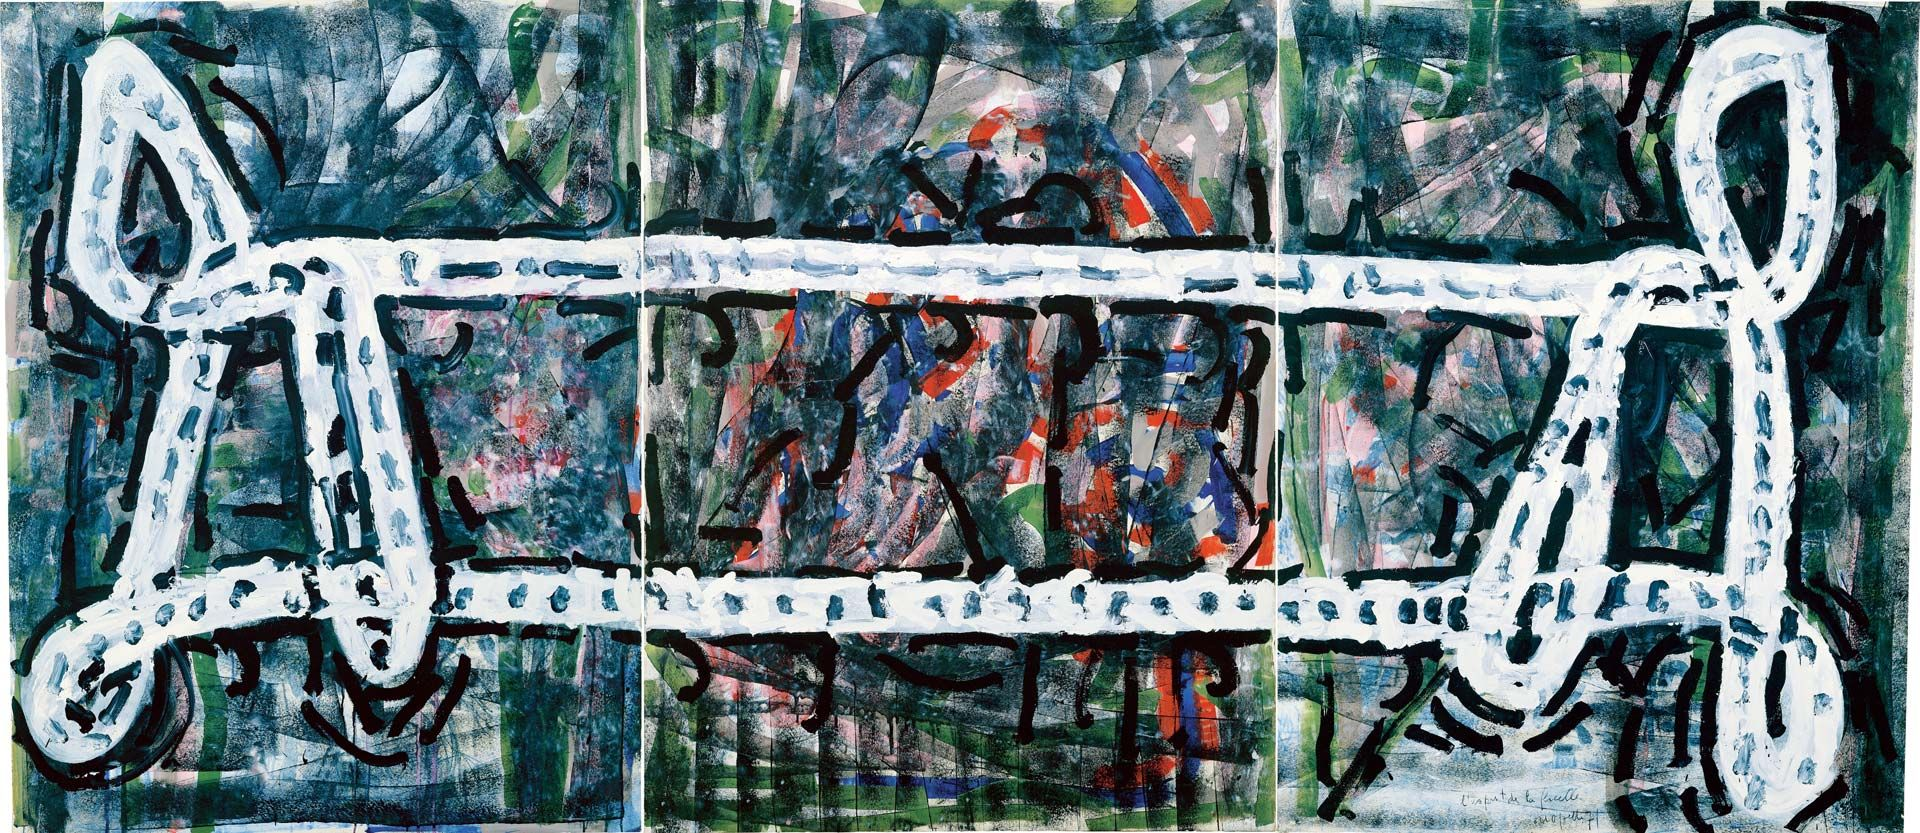 Jean Paul Riopelle (1923-2002), L'esprit de la ficelle (triptych), 1971, acrylic on lithograph mounted on canvas, 160 x 360 cm. Private collection. © Estate of Jean Paul Riopelle / SOCAN (2020). Photo archives catalogue raisonné Jean Paul Riopelle